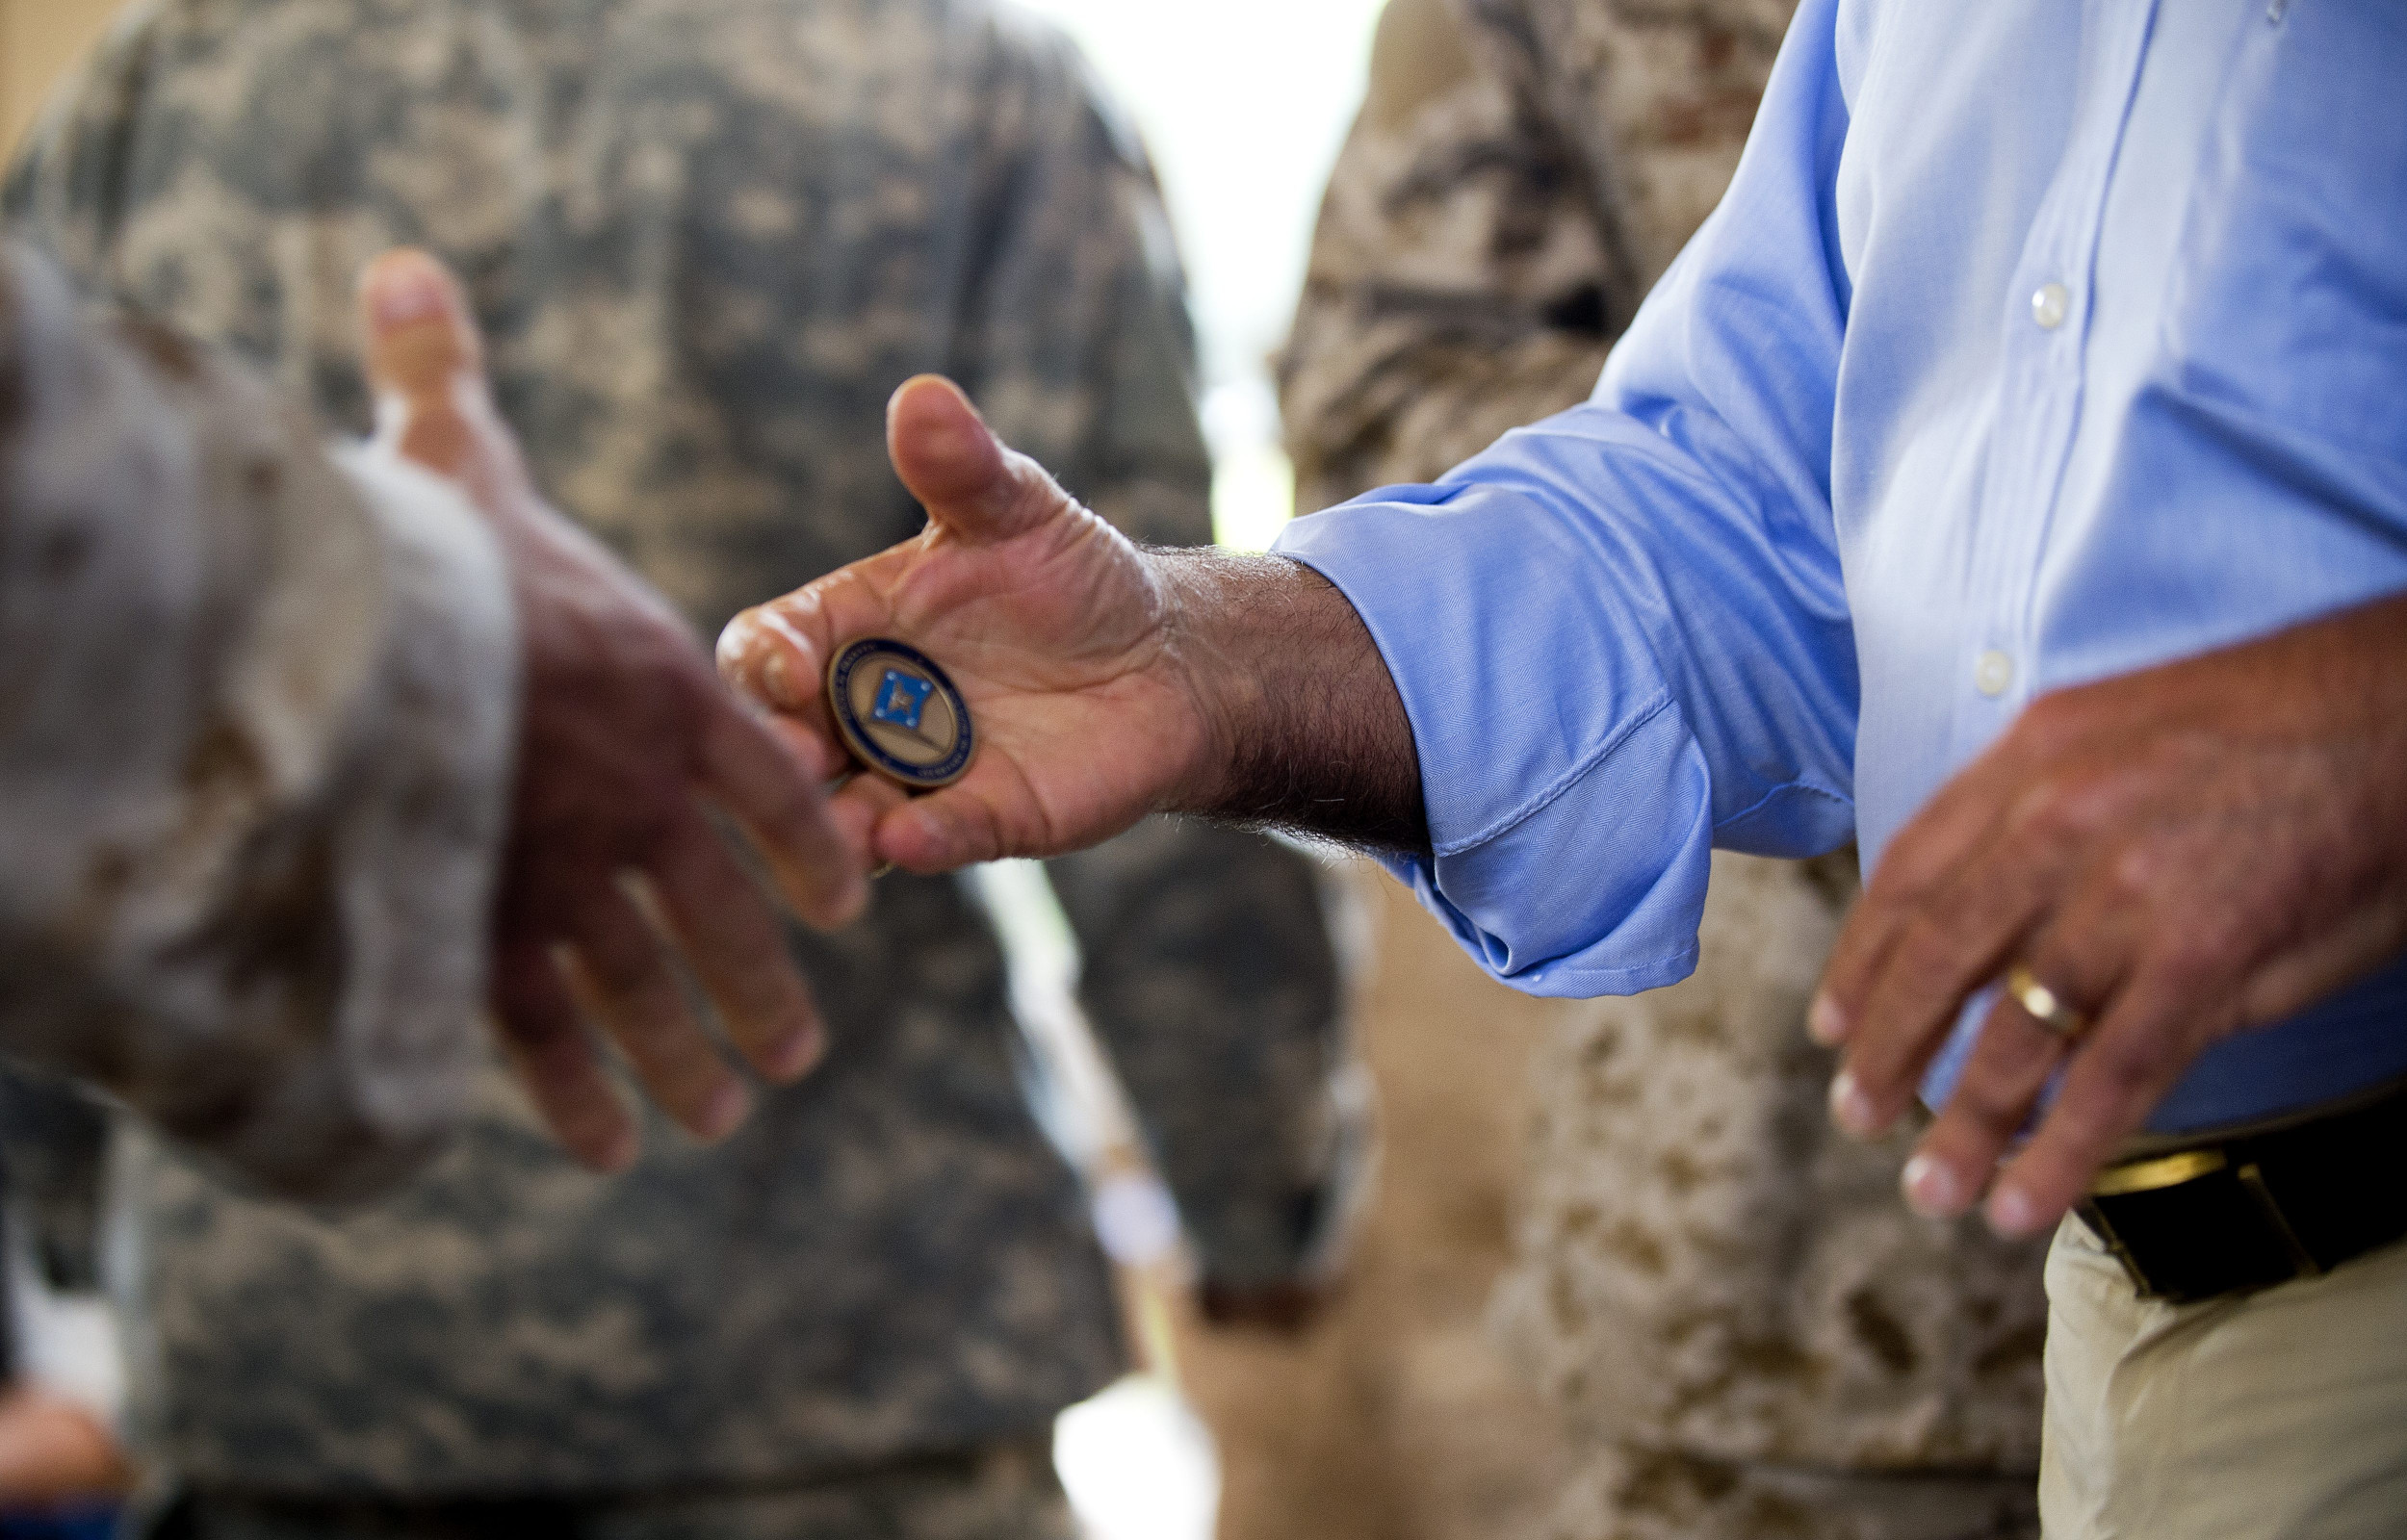 Joe Biden gives Marine's mother command coin in viral video